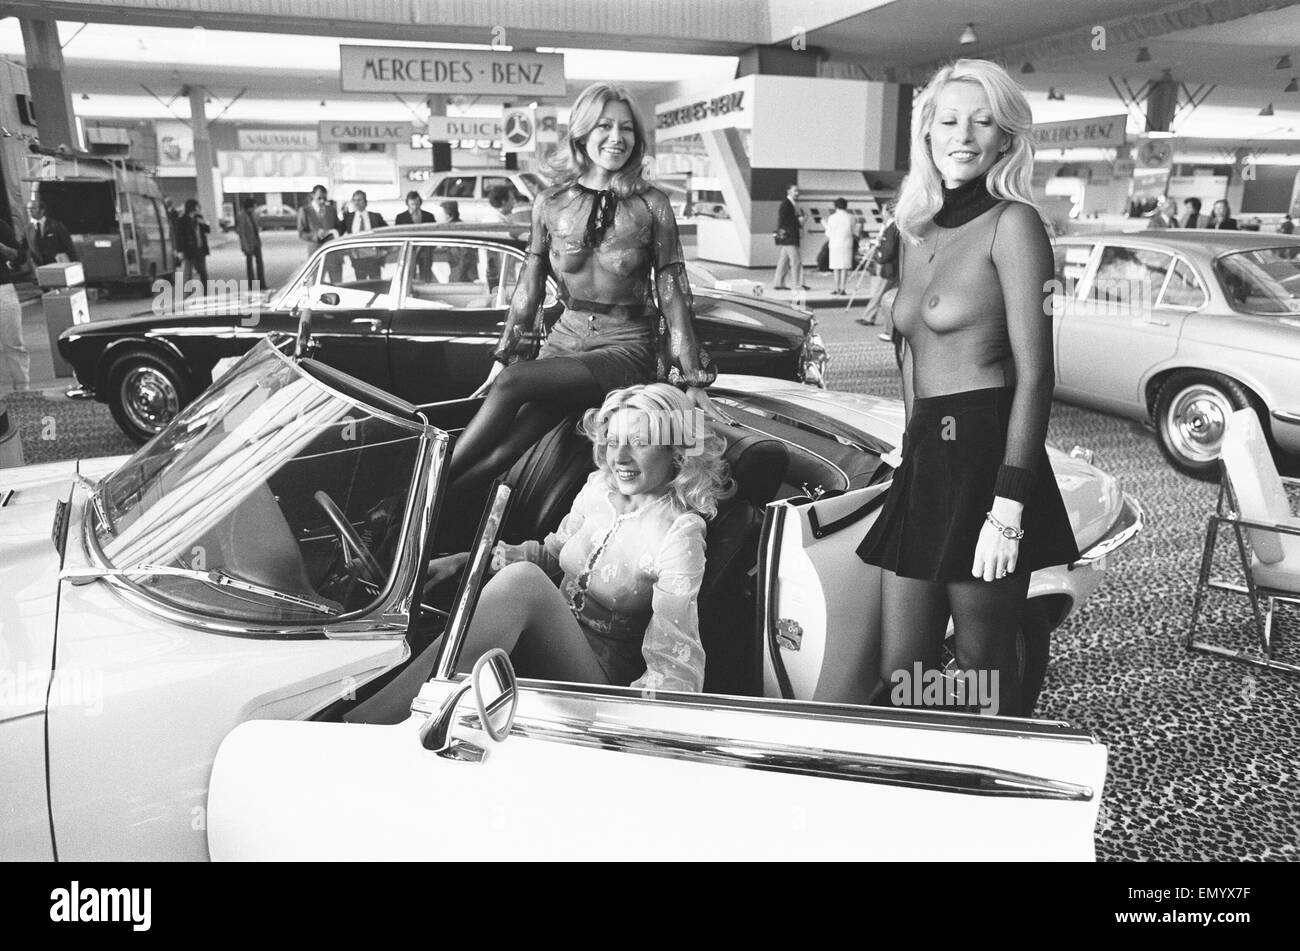 general scenes from the 1972 paris motor show 6th october 1972 stock